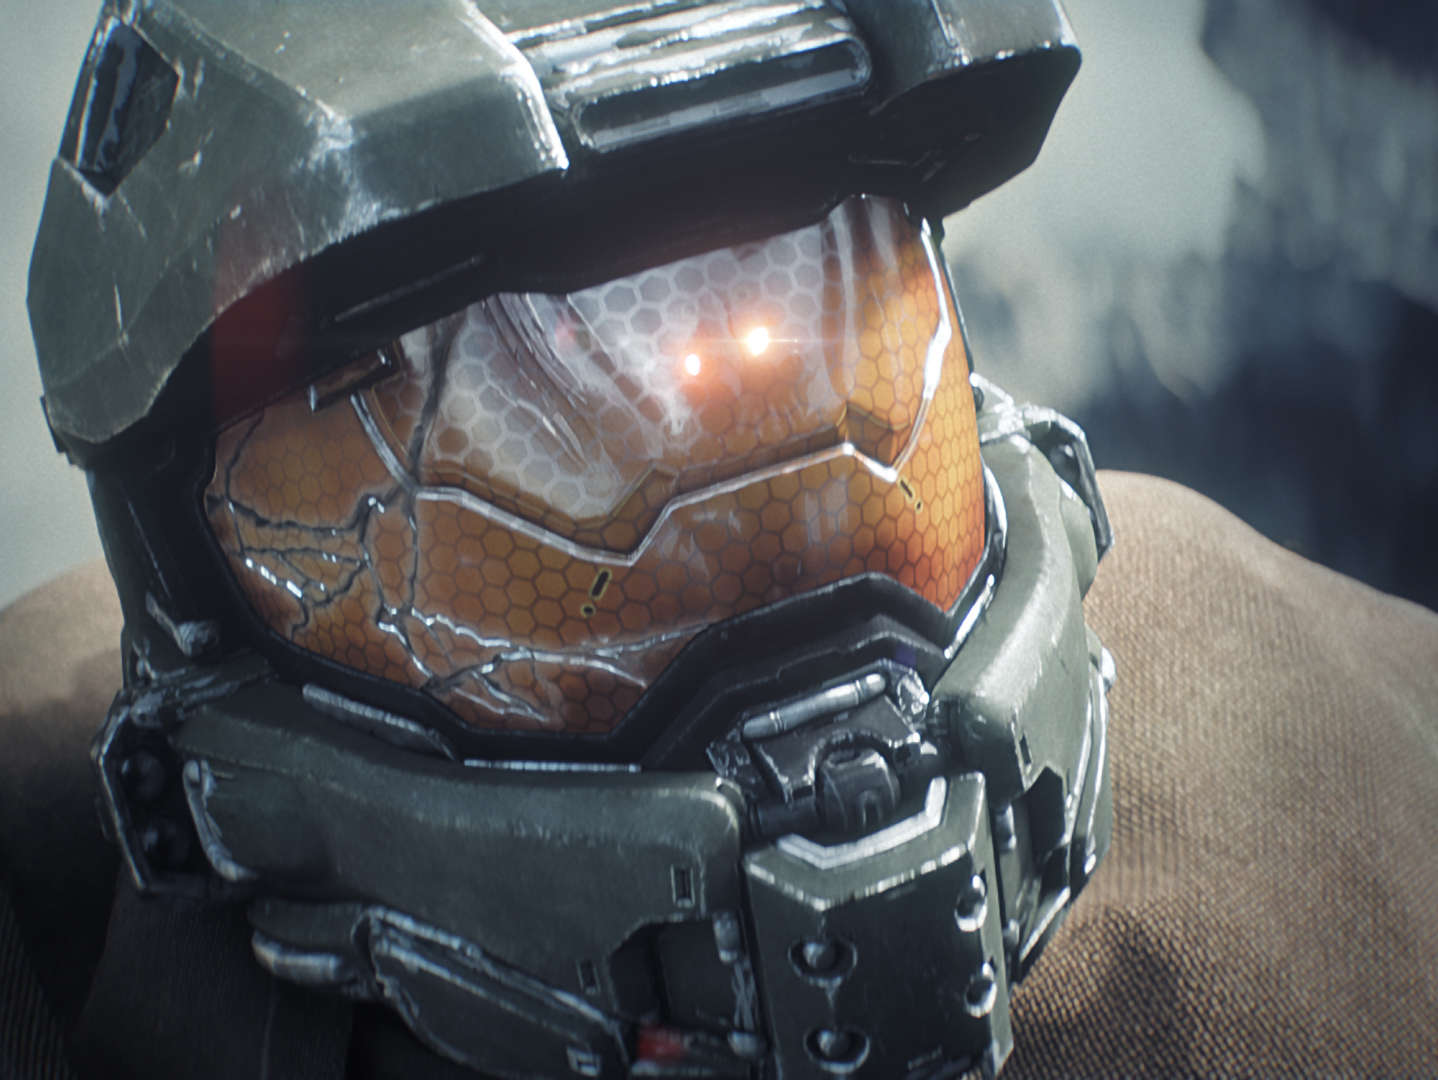 Reasons to buy an XBox One - Playing Halo